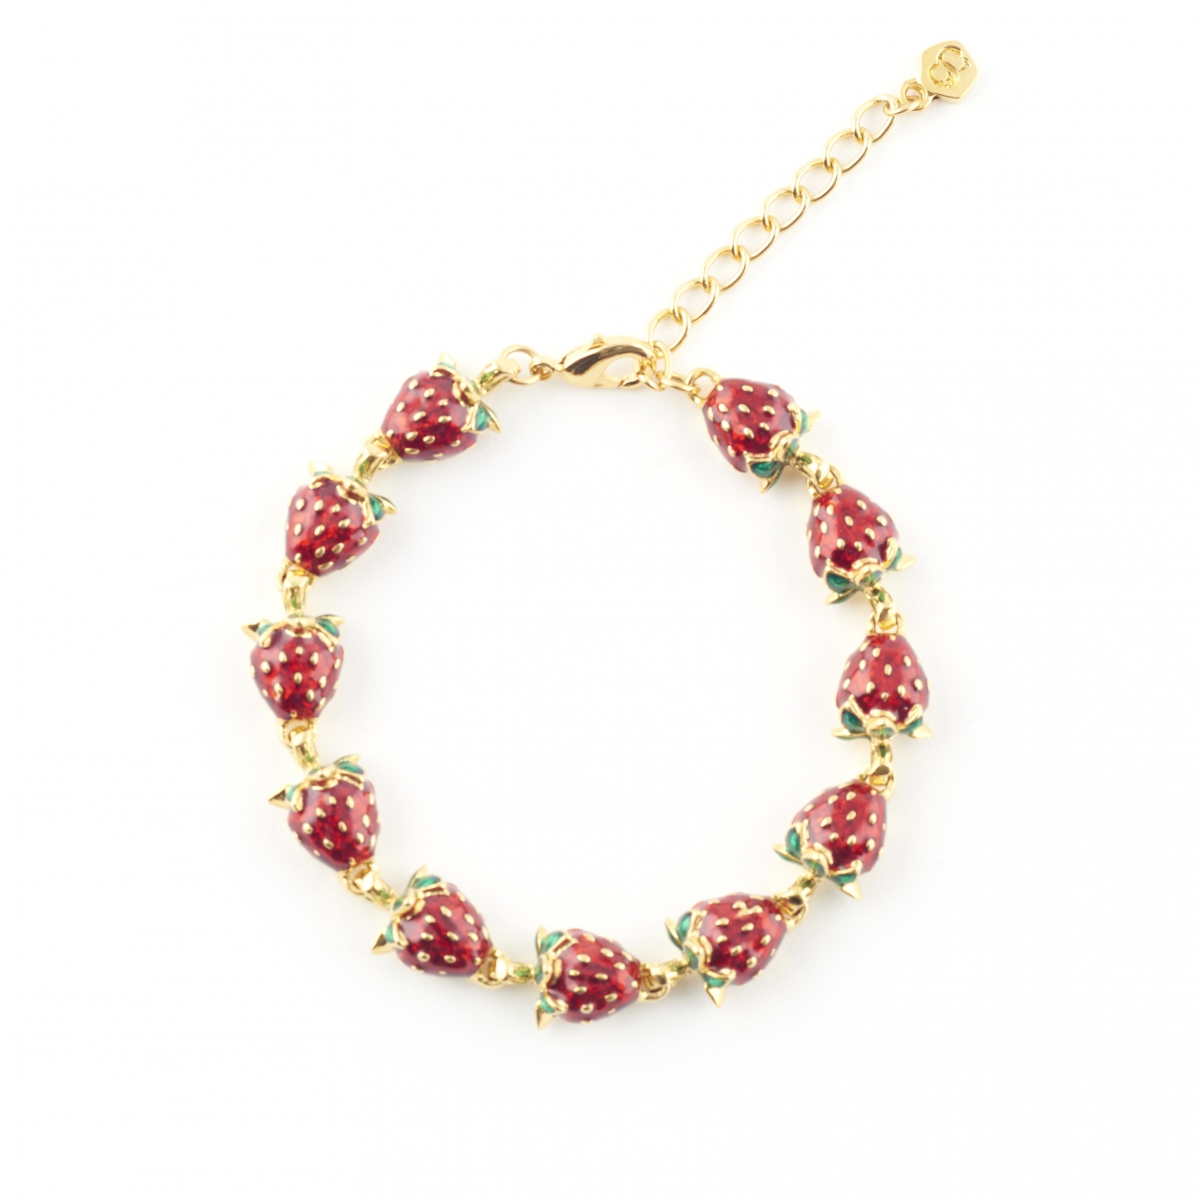 Summer Strawberry Bracelet Fashion Jewellery